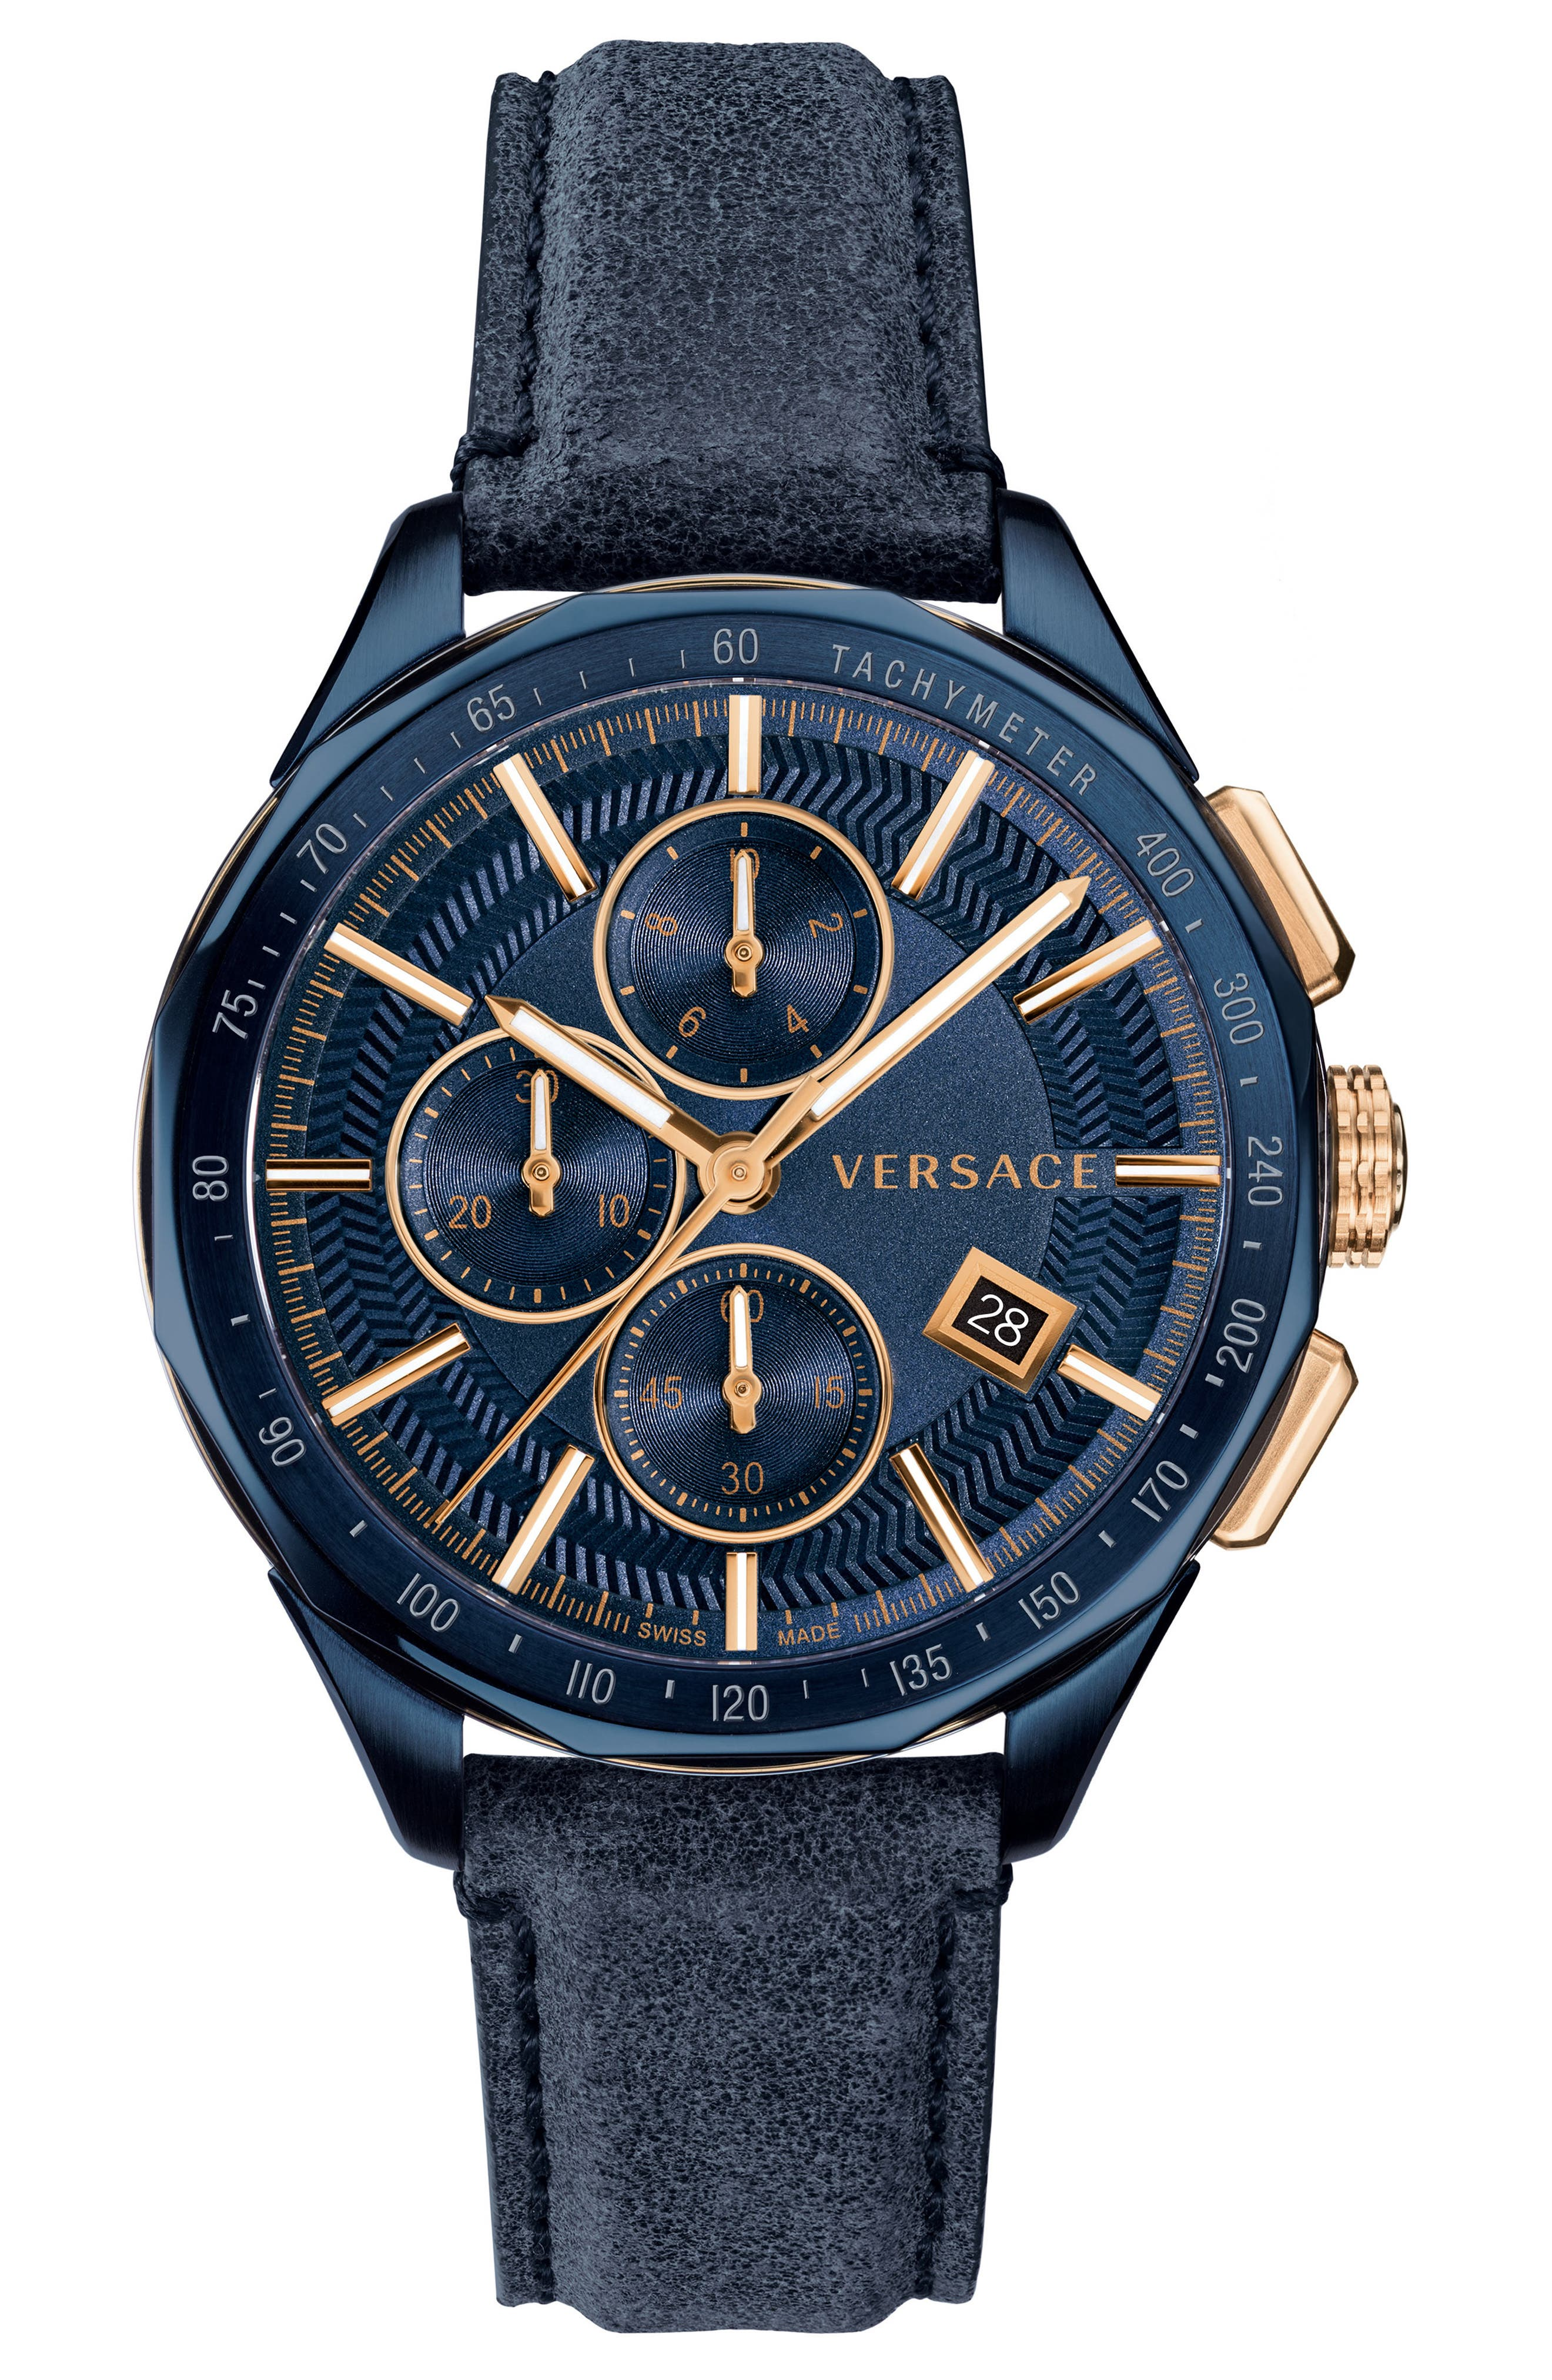 VERSACE Glaze Chronograph Leather Strap Watch, 44mm, Main, color, BLUE